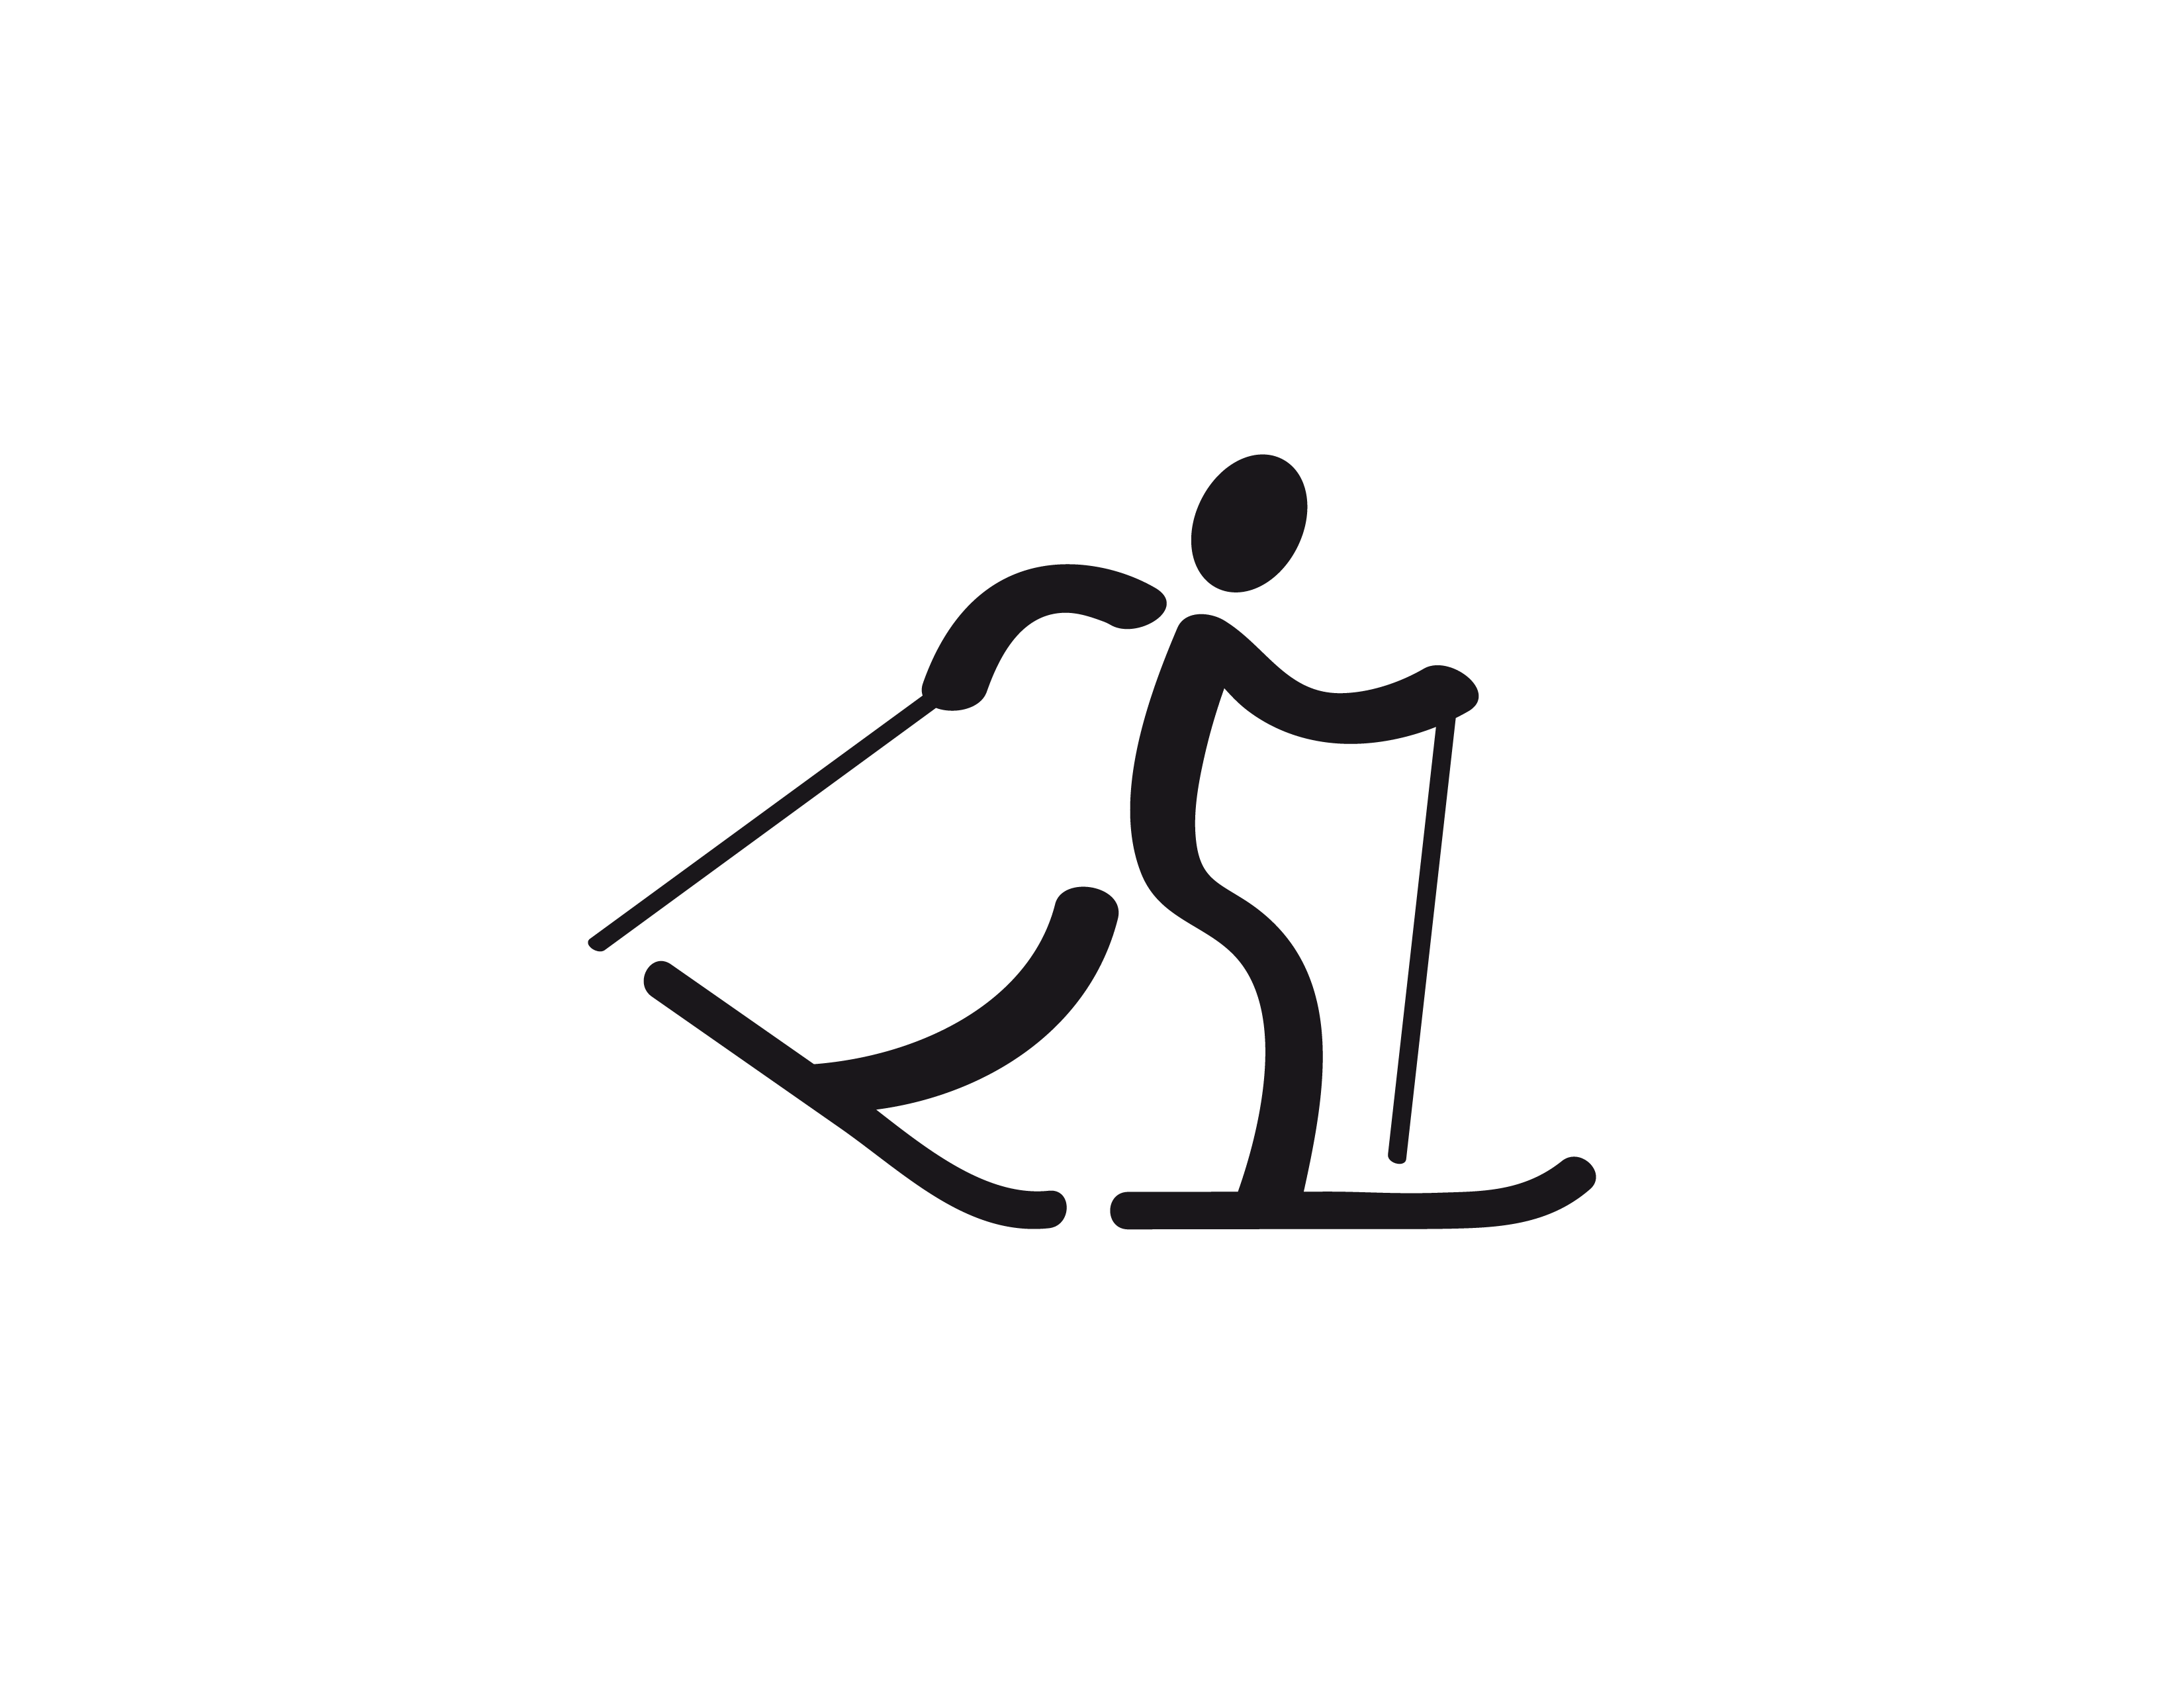 Olympics clipart ski. Special oregon training for